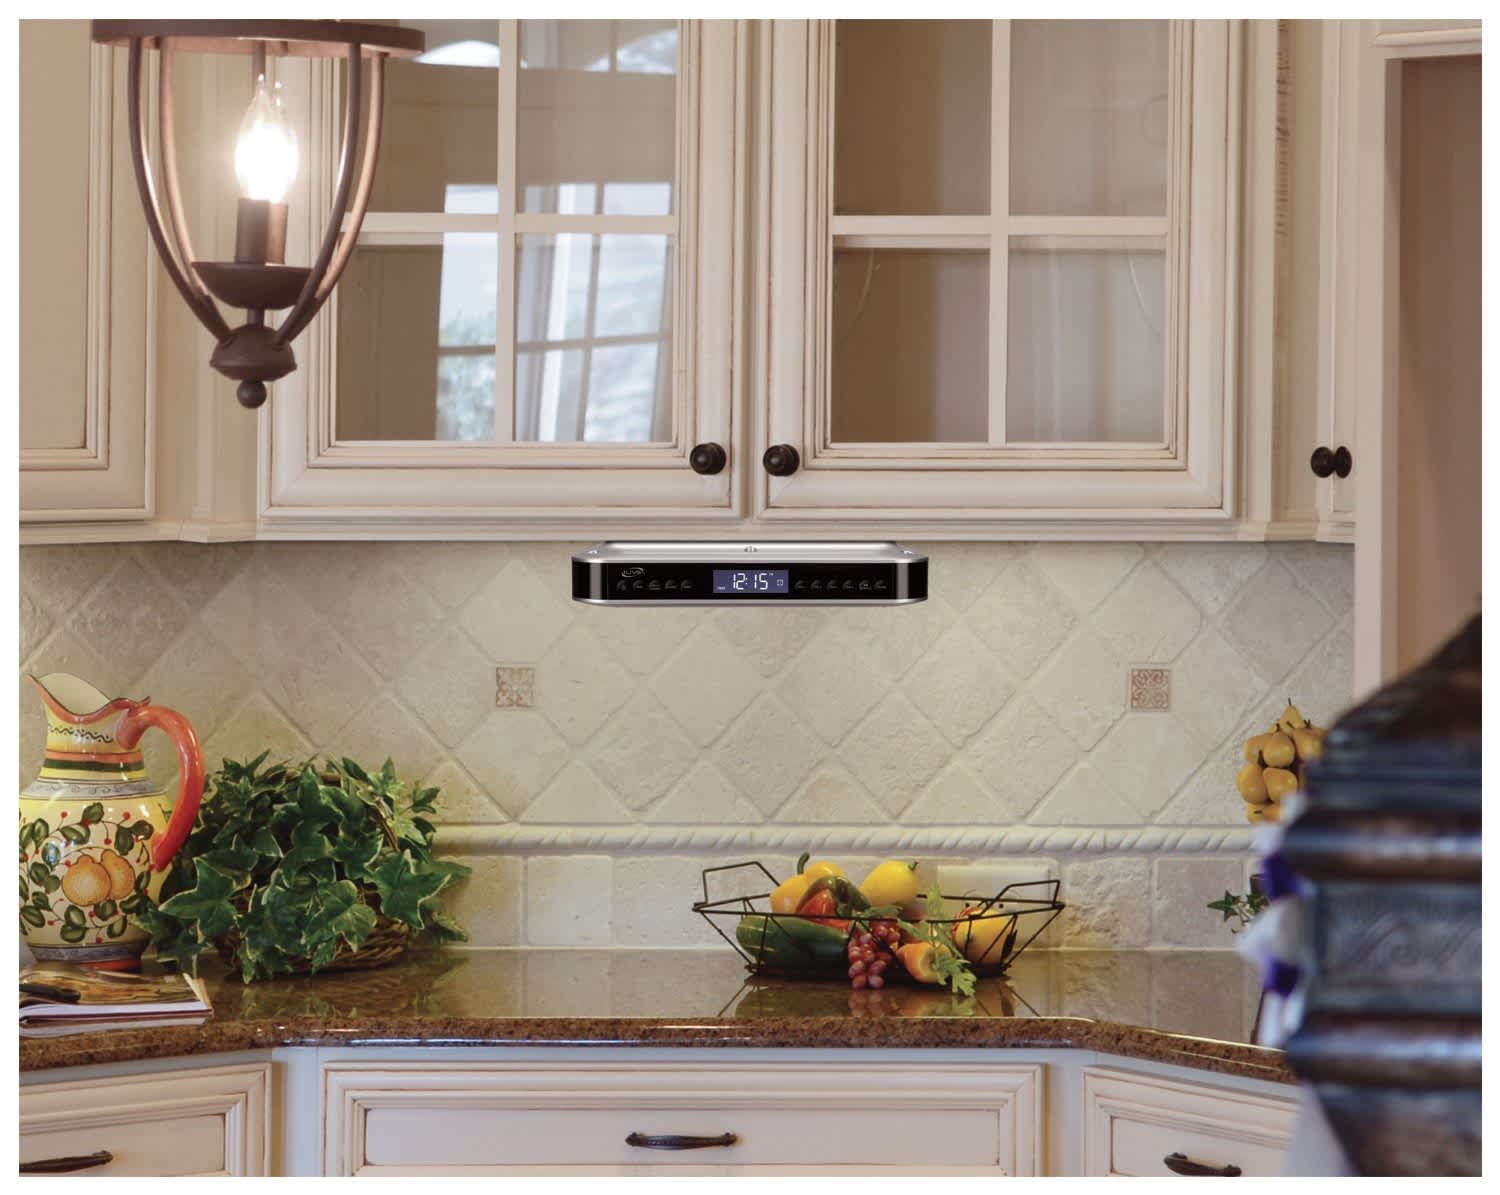 Exceptionnel 5 Kitchen Ready Speakers So You Can Dance While You Cook: Gallery Image 2